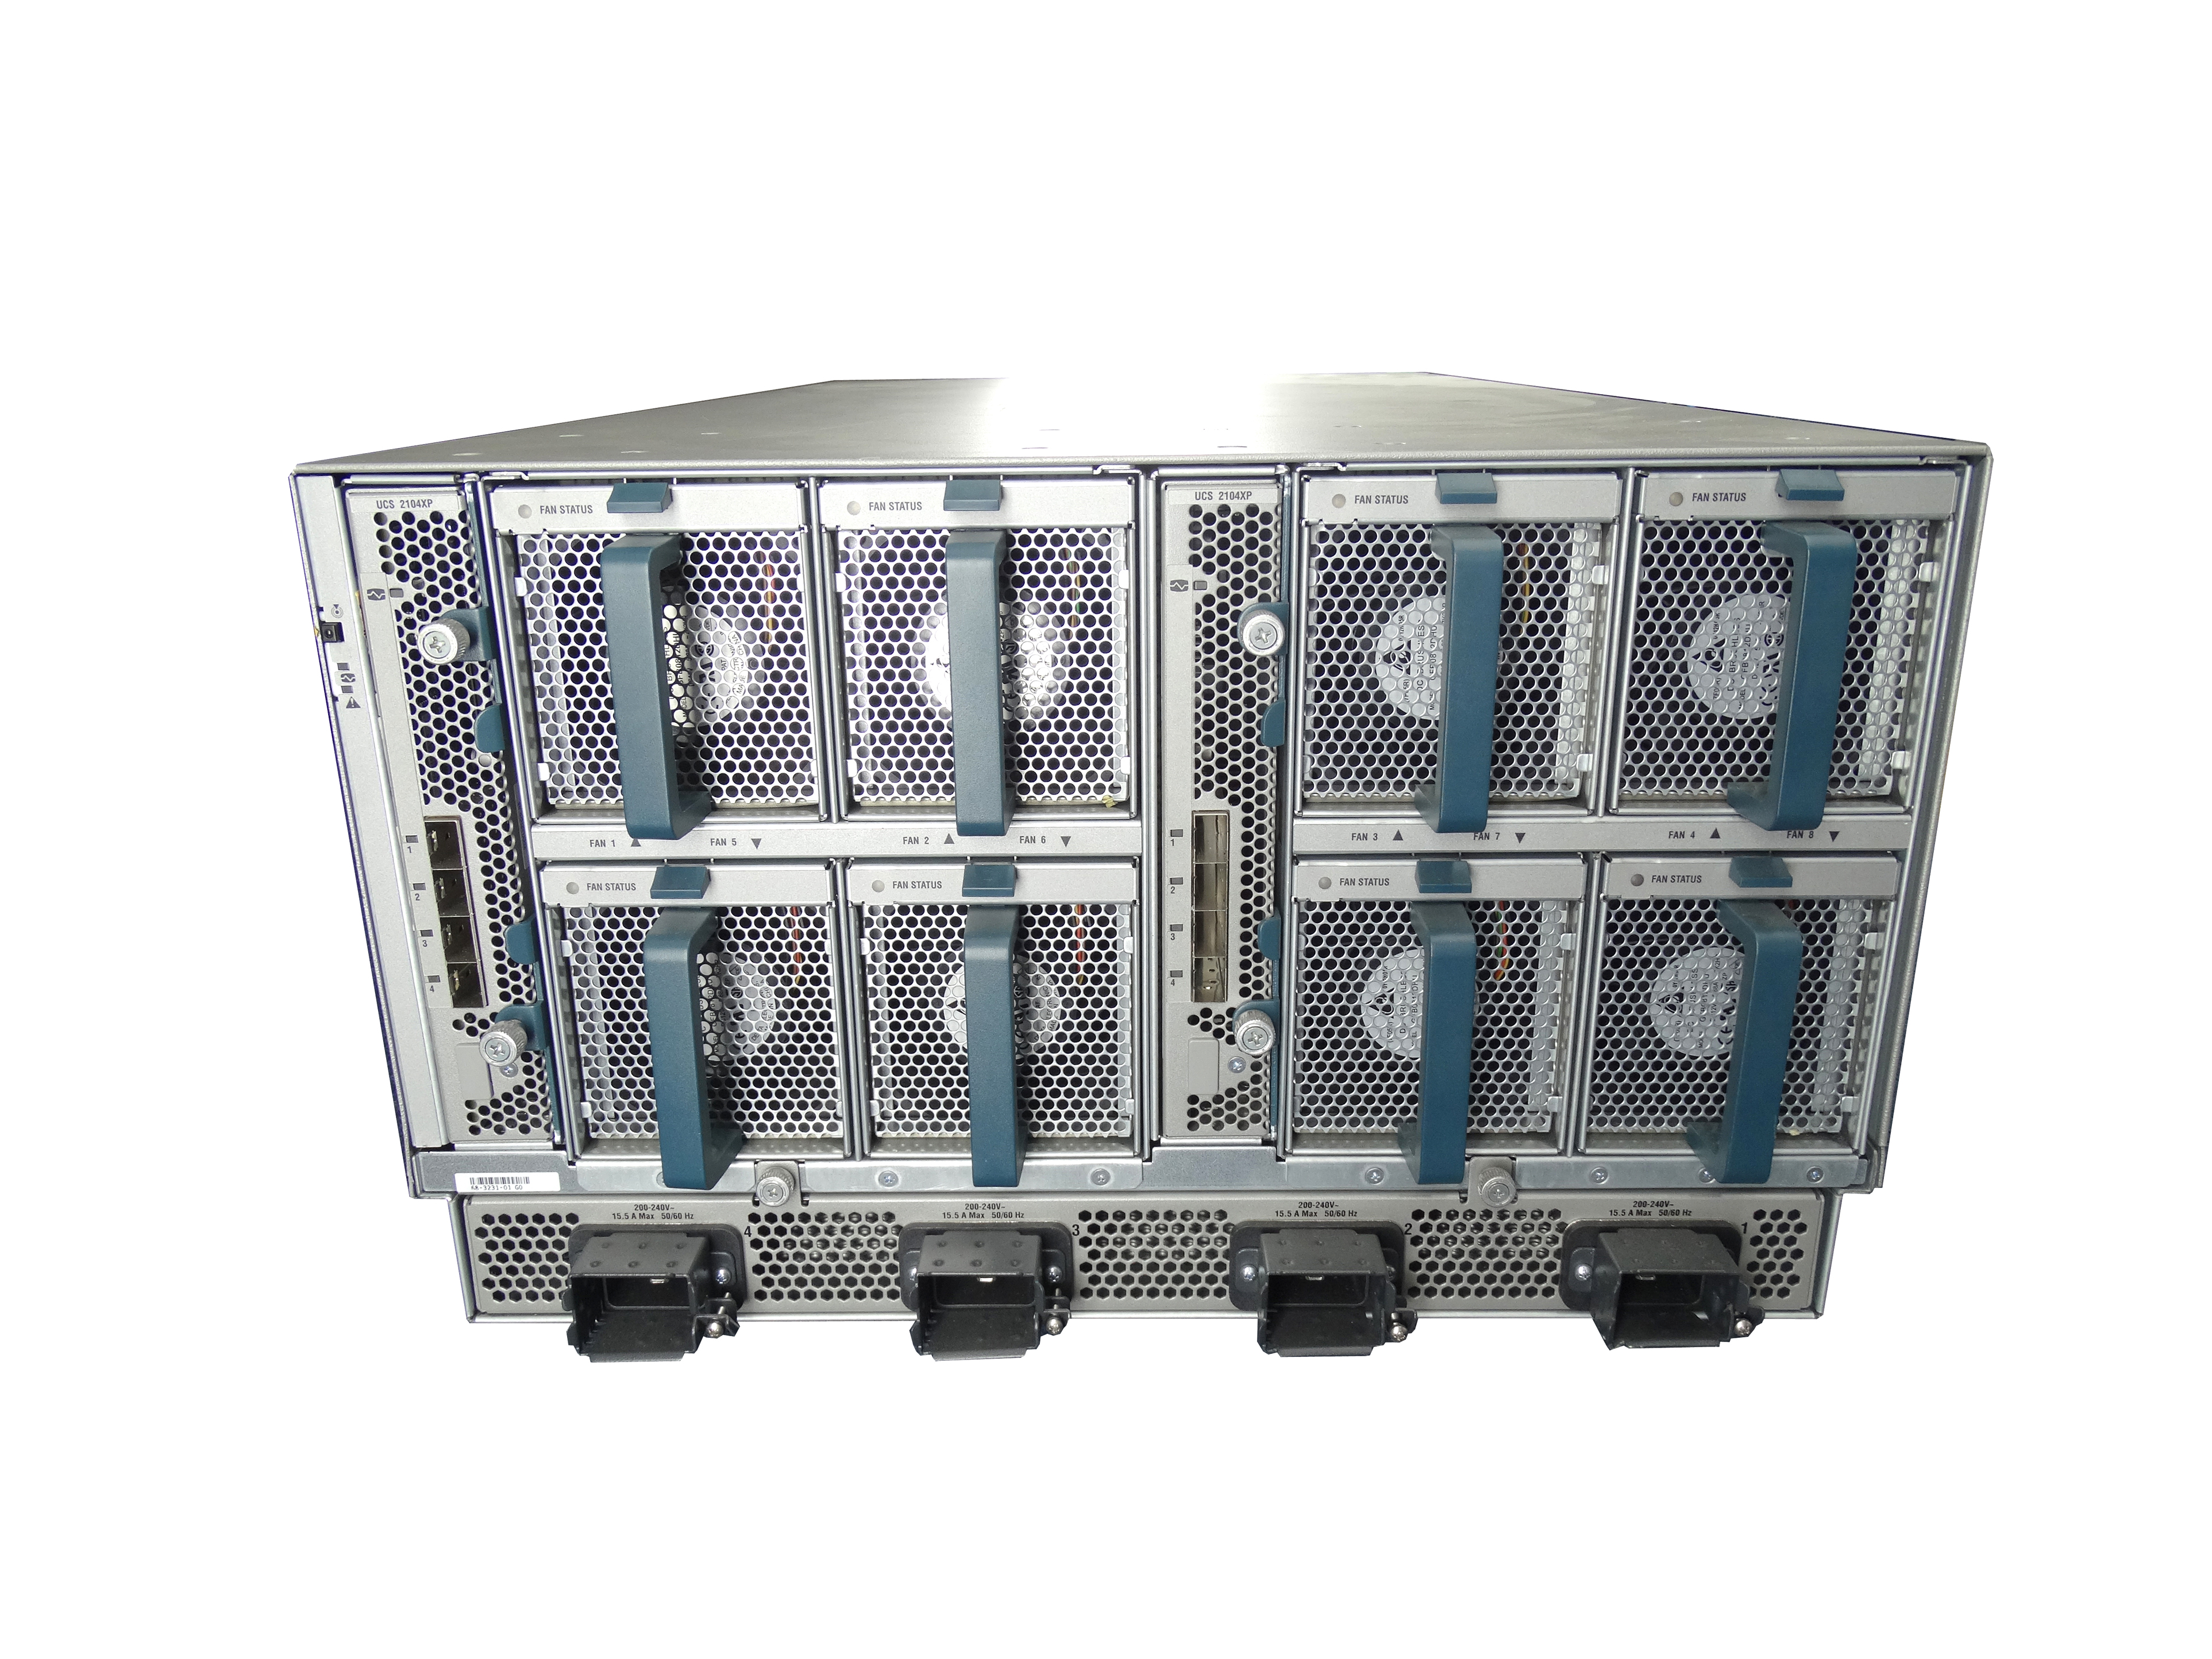 Cisco UCS 5108 Chassis with 8x B200 M3 Blade Server